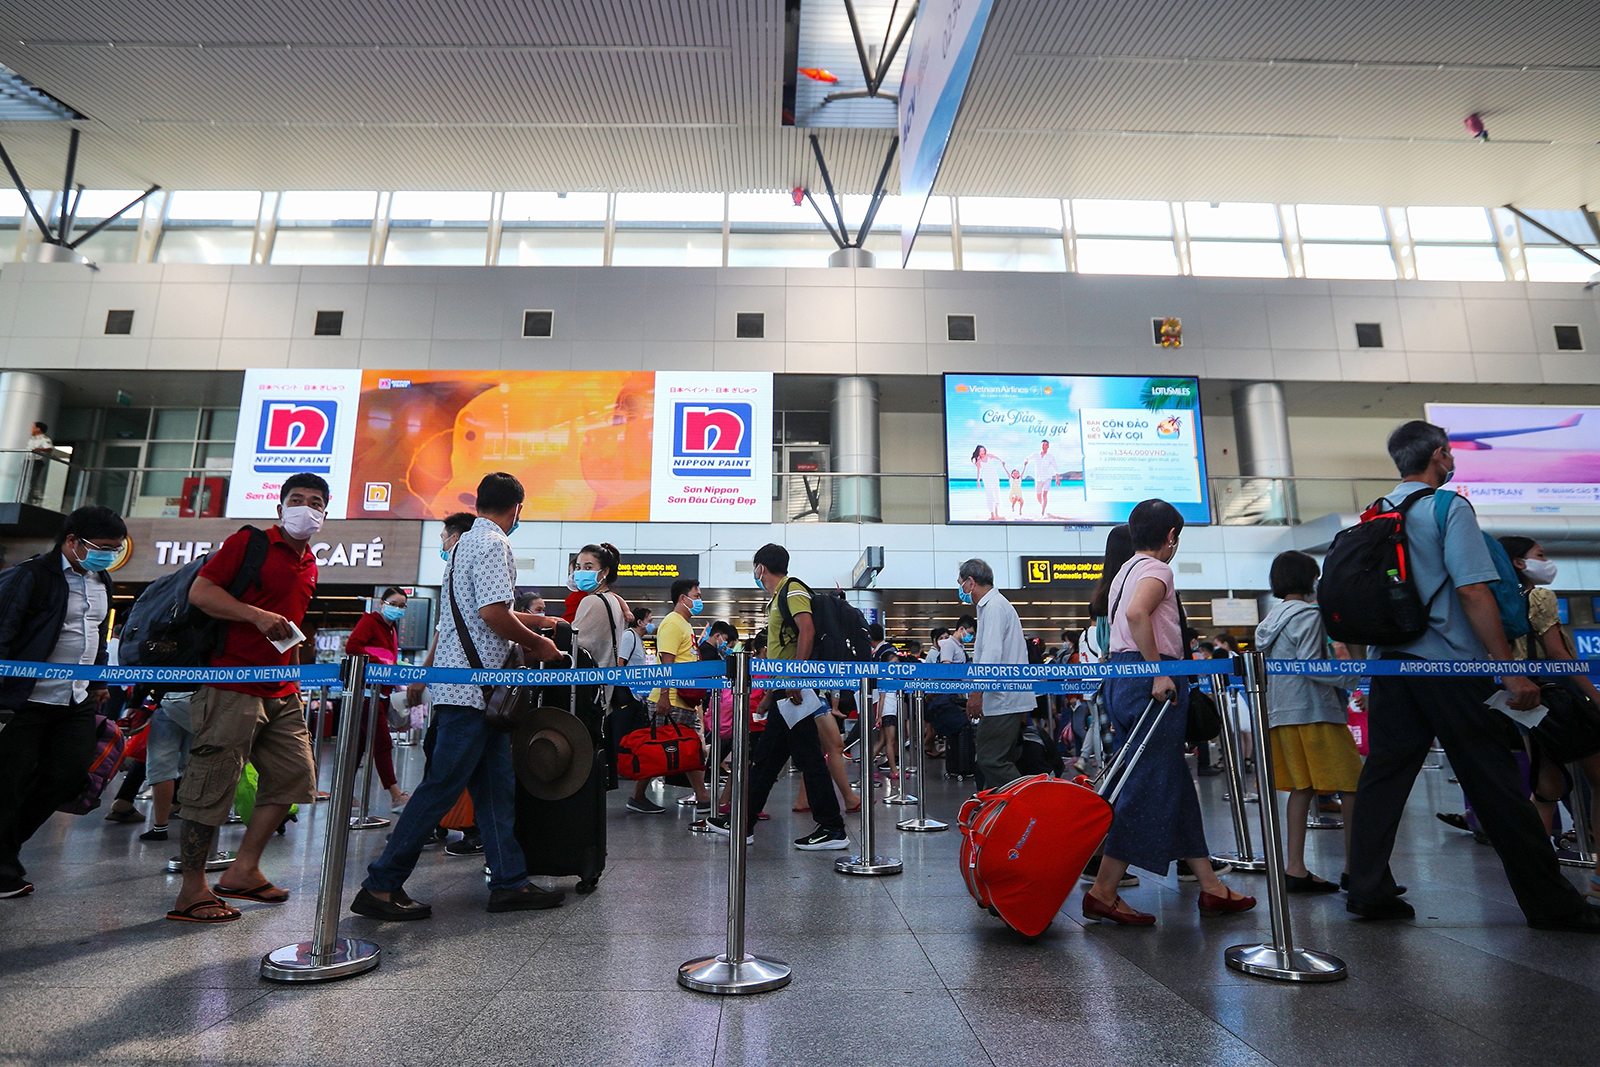 Passengers wearing face masks queue up for check-in at the departures terminal of Da Nang International Airport in Vietnam on July 27.